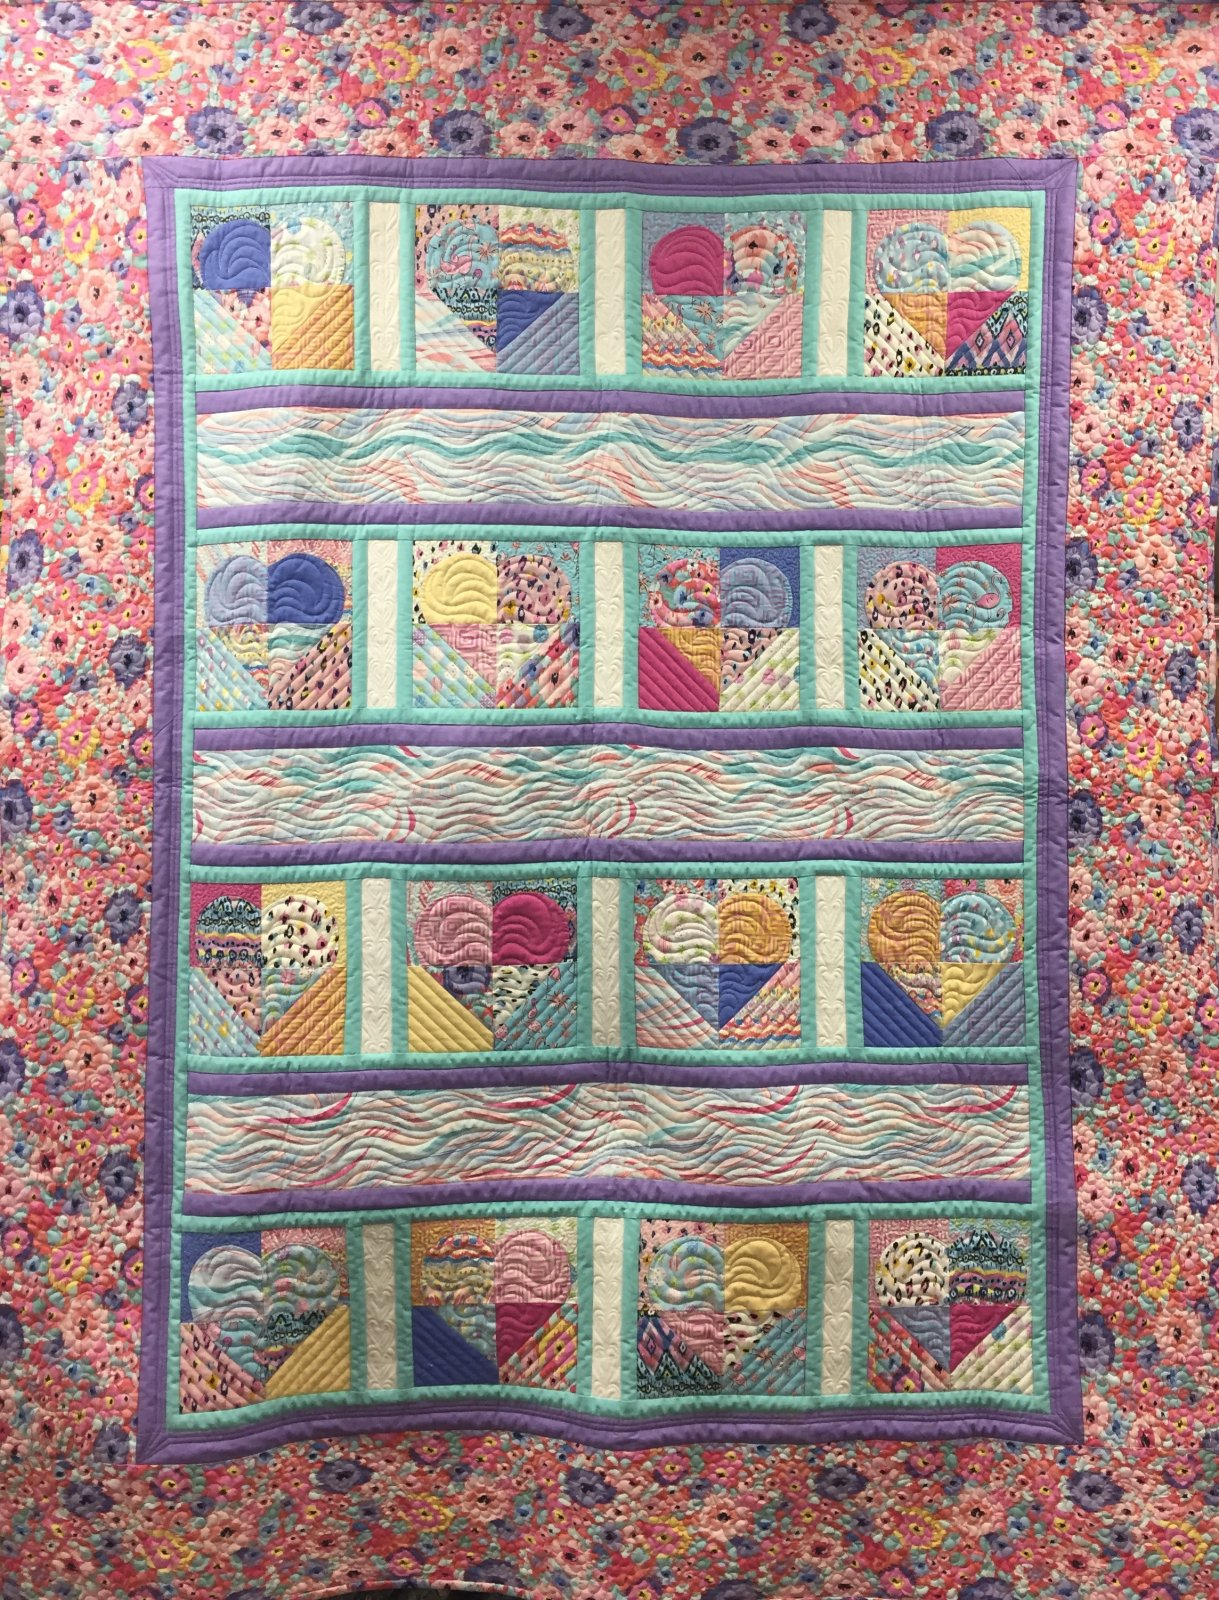 Quilt Basket Sophie's Hearts Quilt Kit